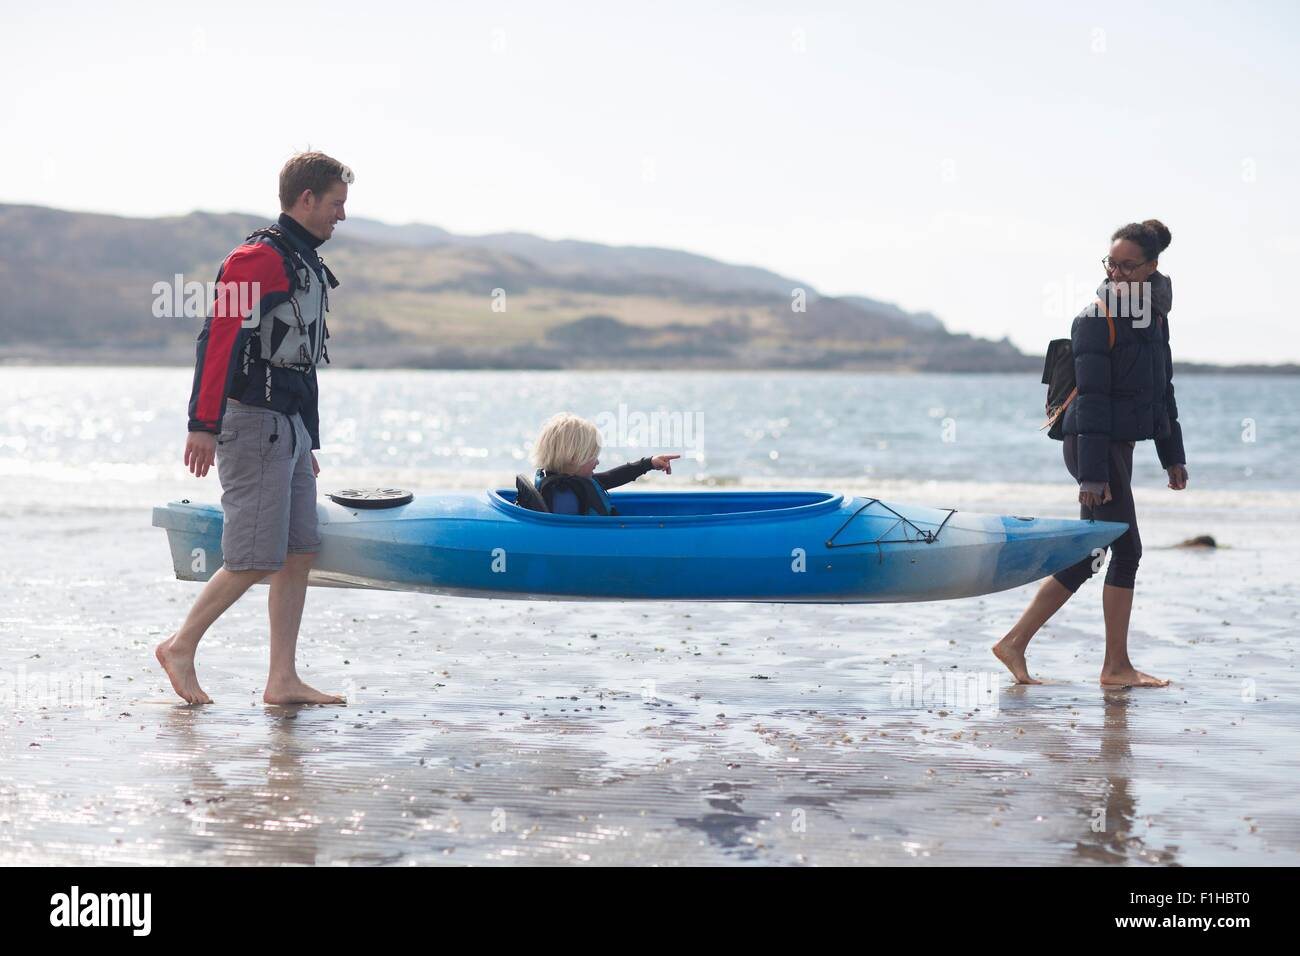 Parents carrying son in canoe on beach, Loch Eishort, Isle of Skye, Hebrides, Scotland - Stock Image